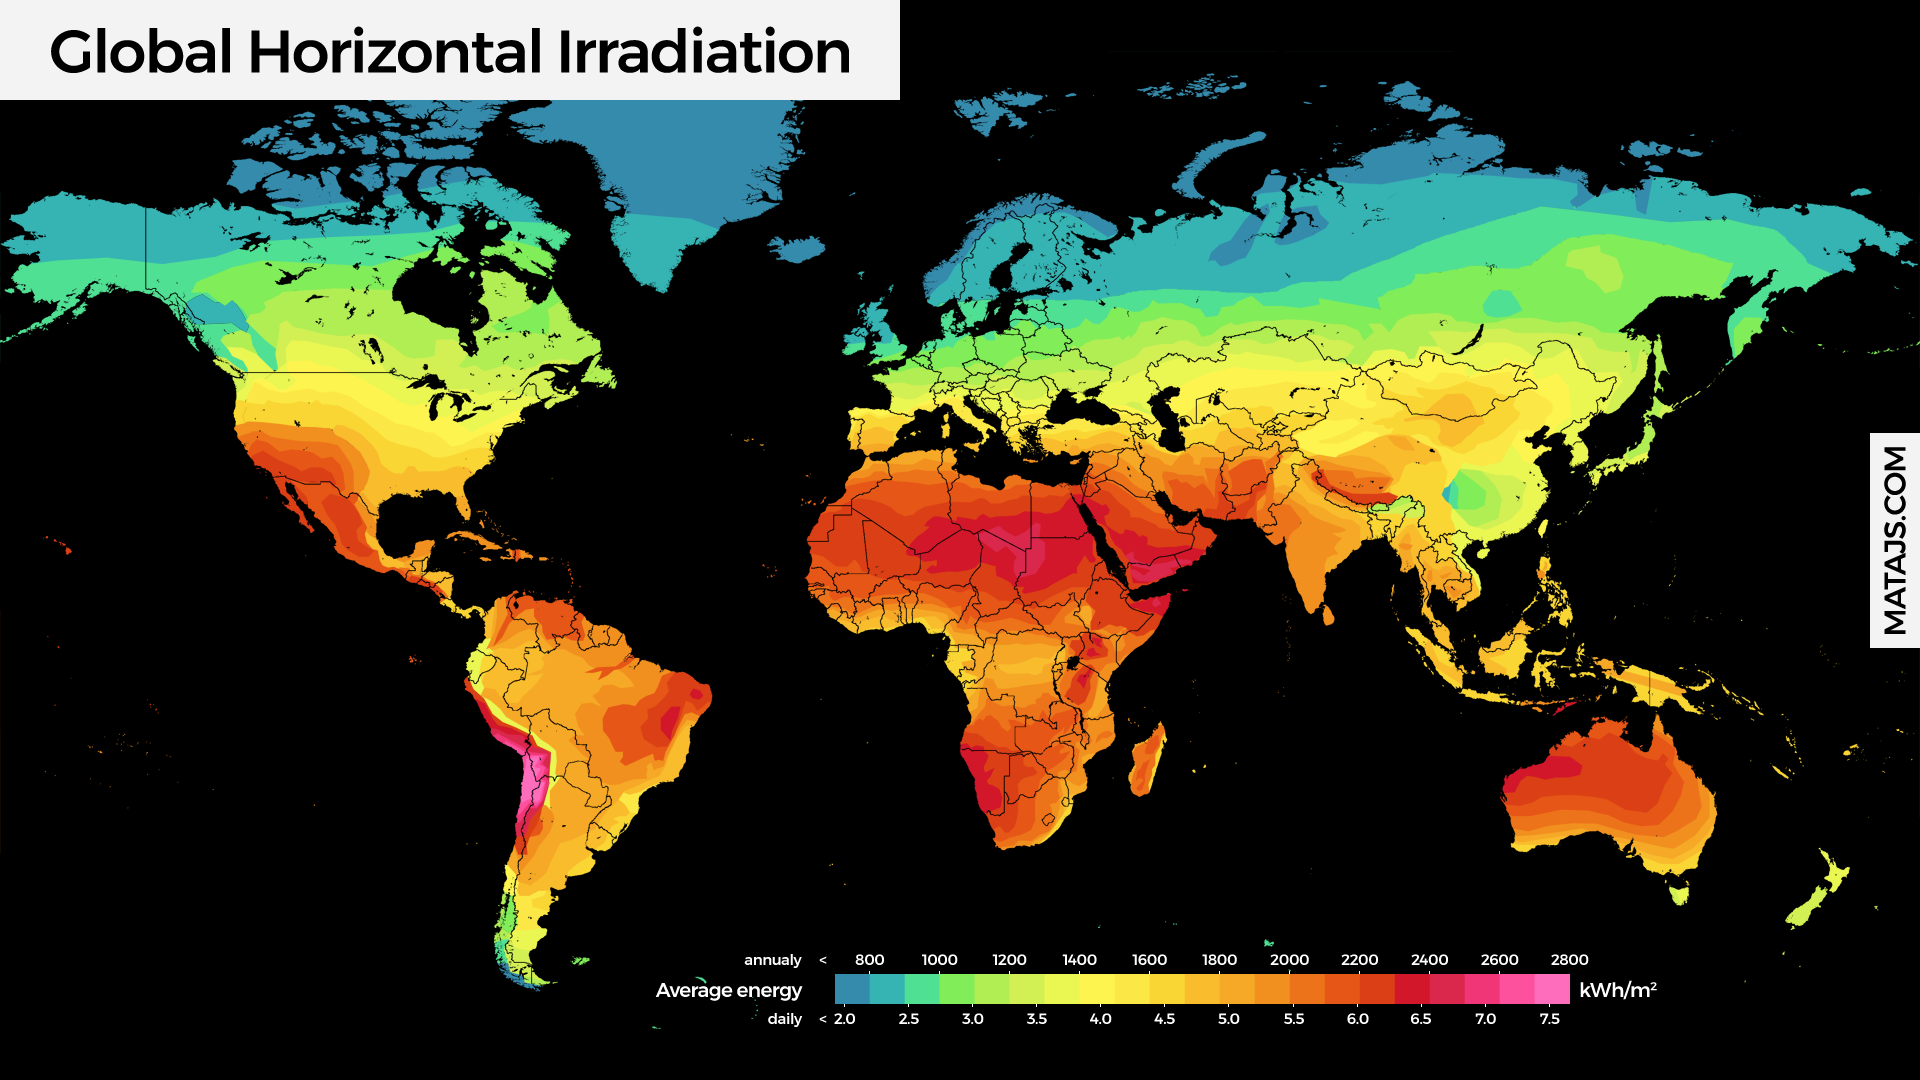 Frequently asked questions faq about solar energy matajs global horizontal irradiation map in kwh per yearday gumiabroncs